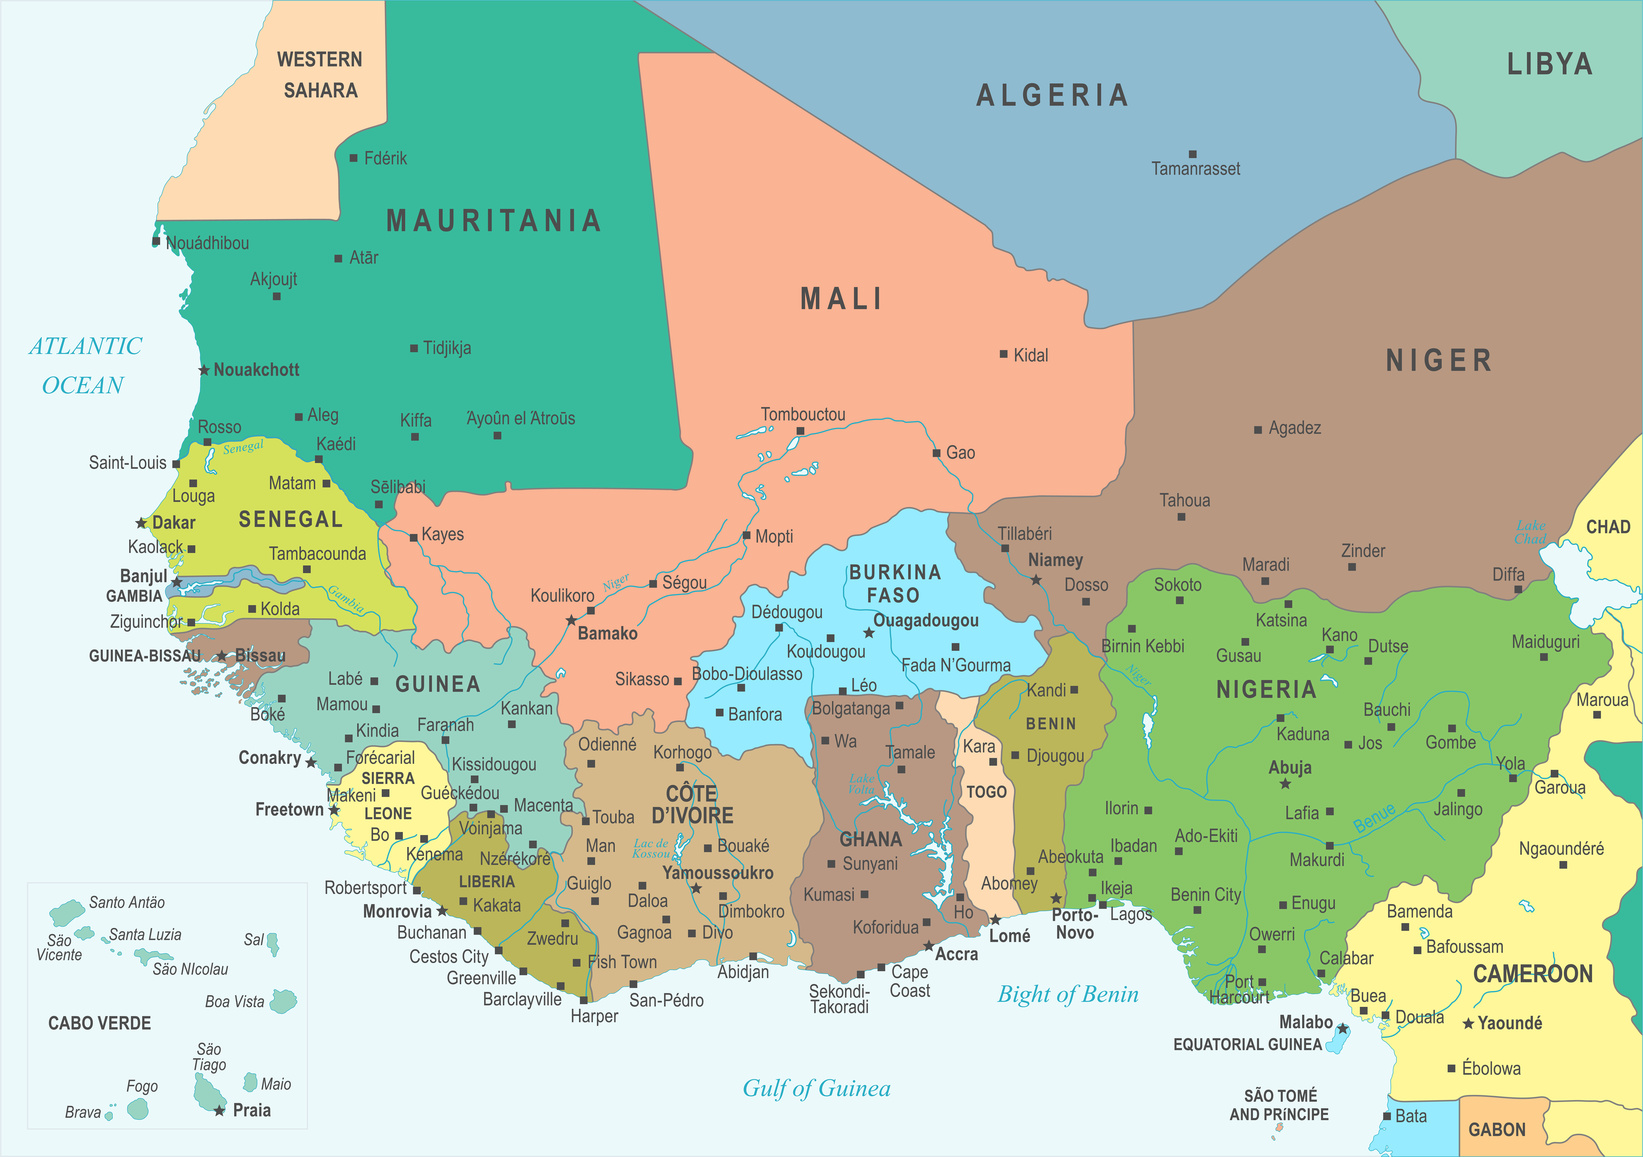 You need to be in the West African Economic and Monetary Union region